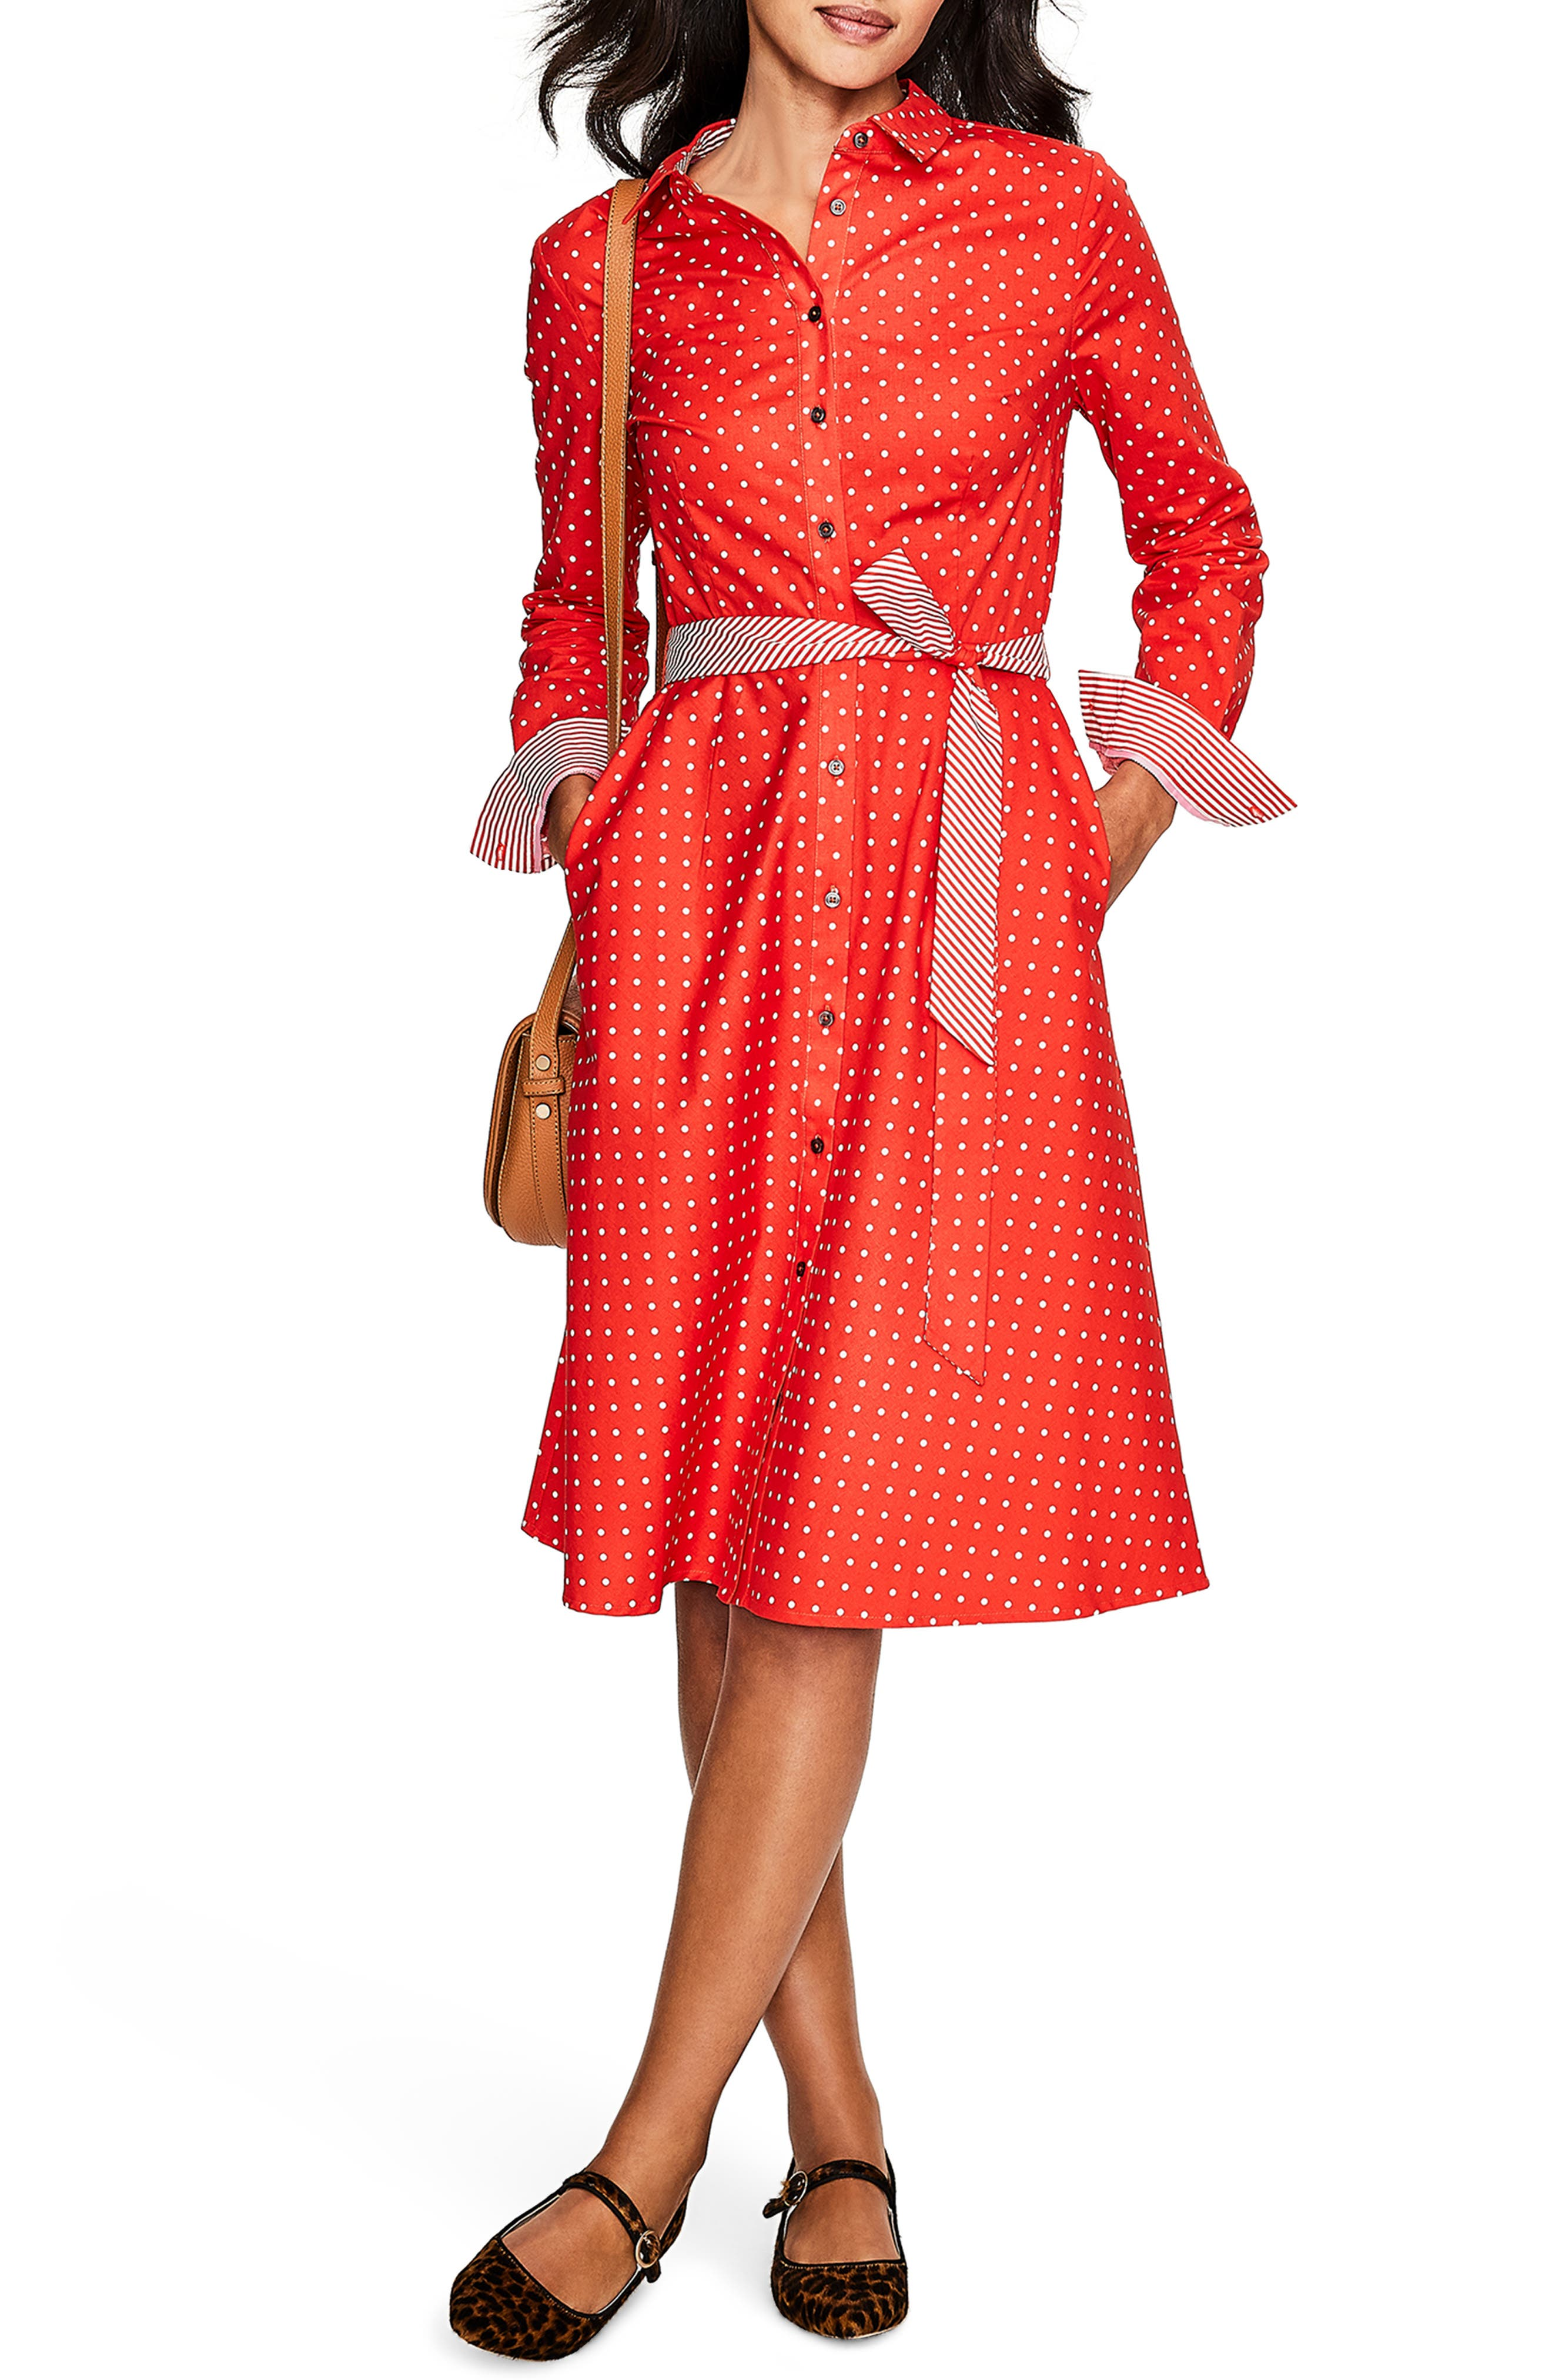 1960s Dresses | 60s Dresses Mod, Mini, Jackie O, Hippie Petite Womens Boden Posy Cotton Shirtdress Size 10P - Red $49.97 AT vintagedancer.com